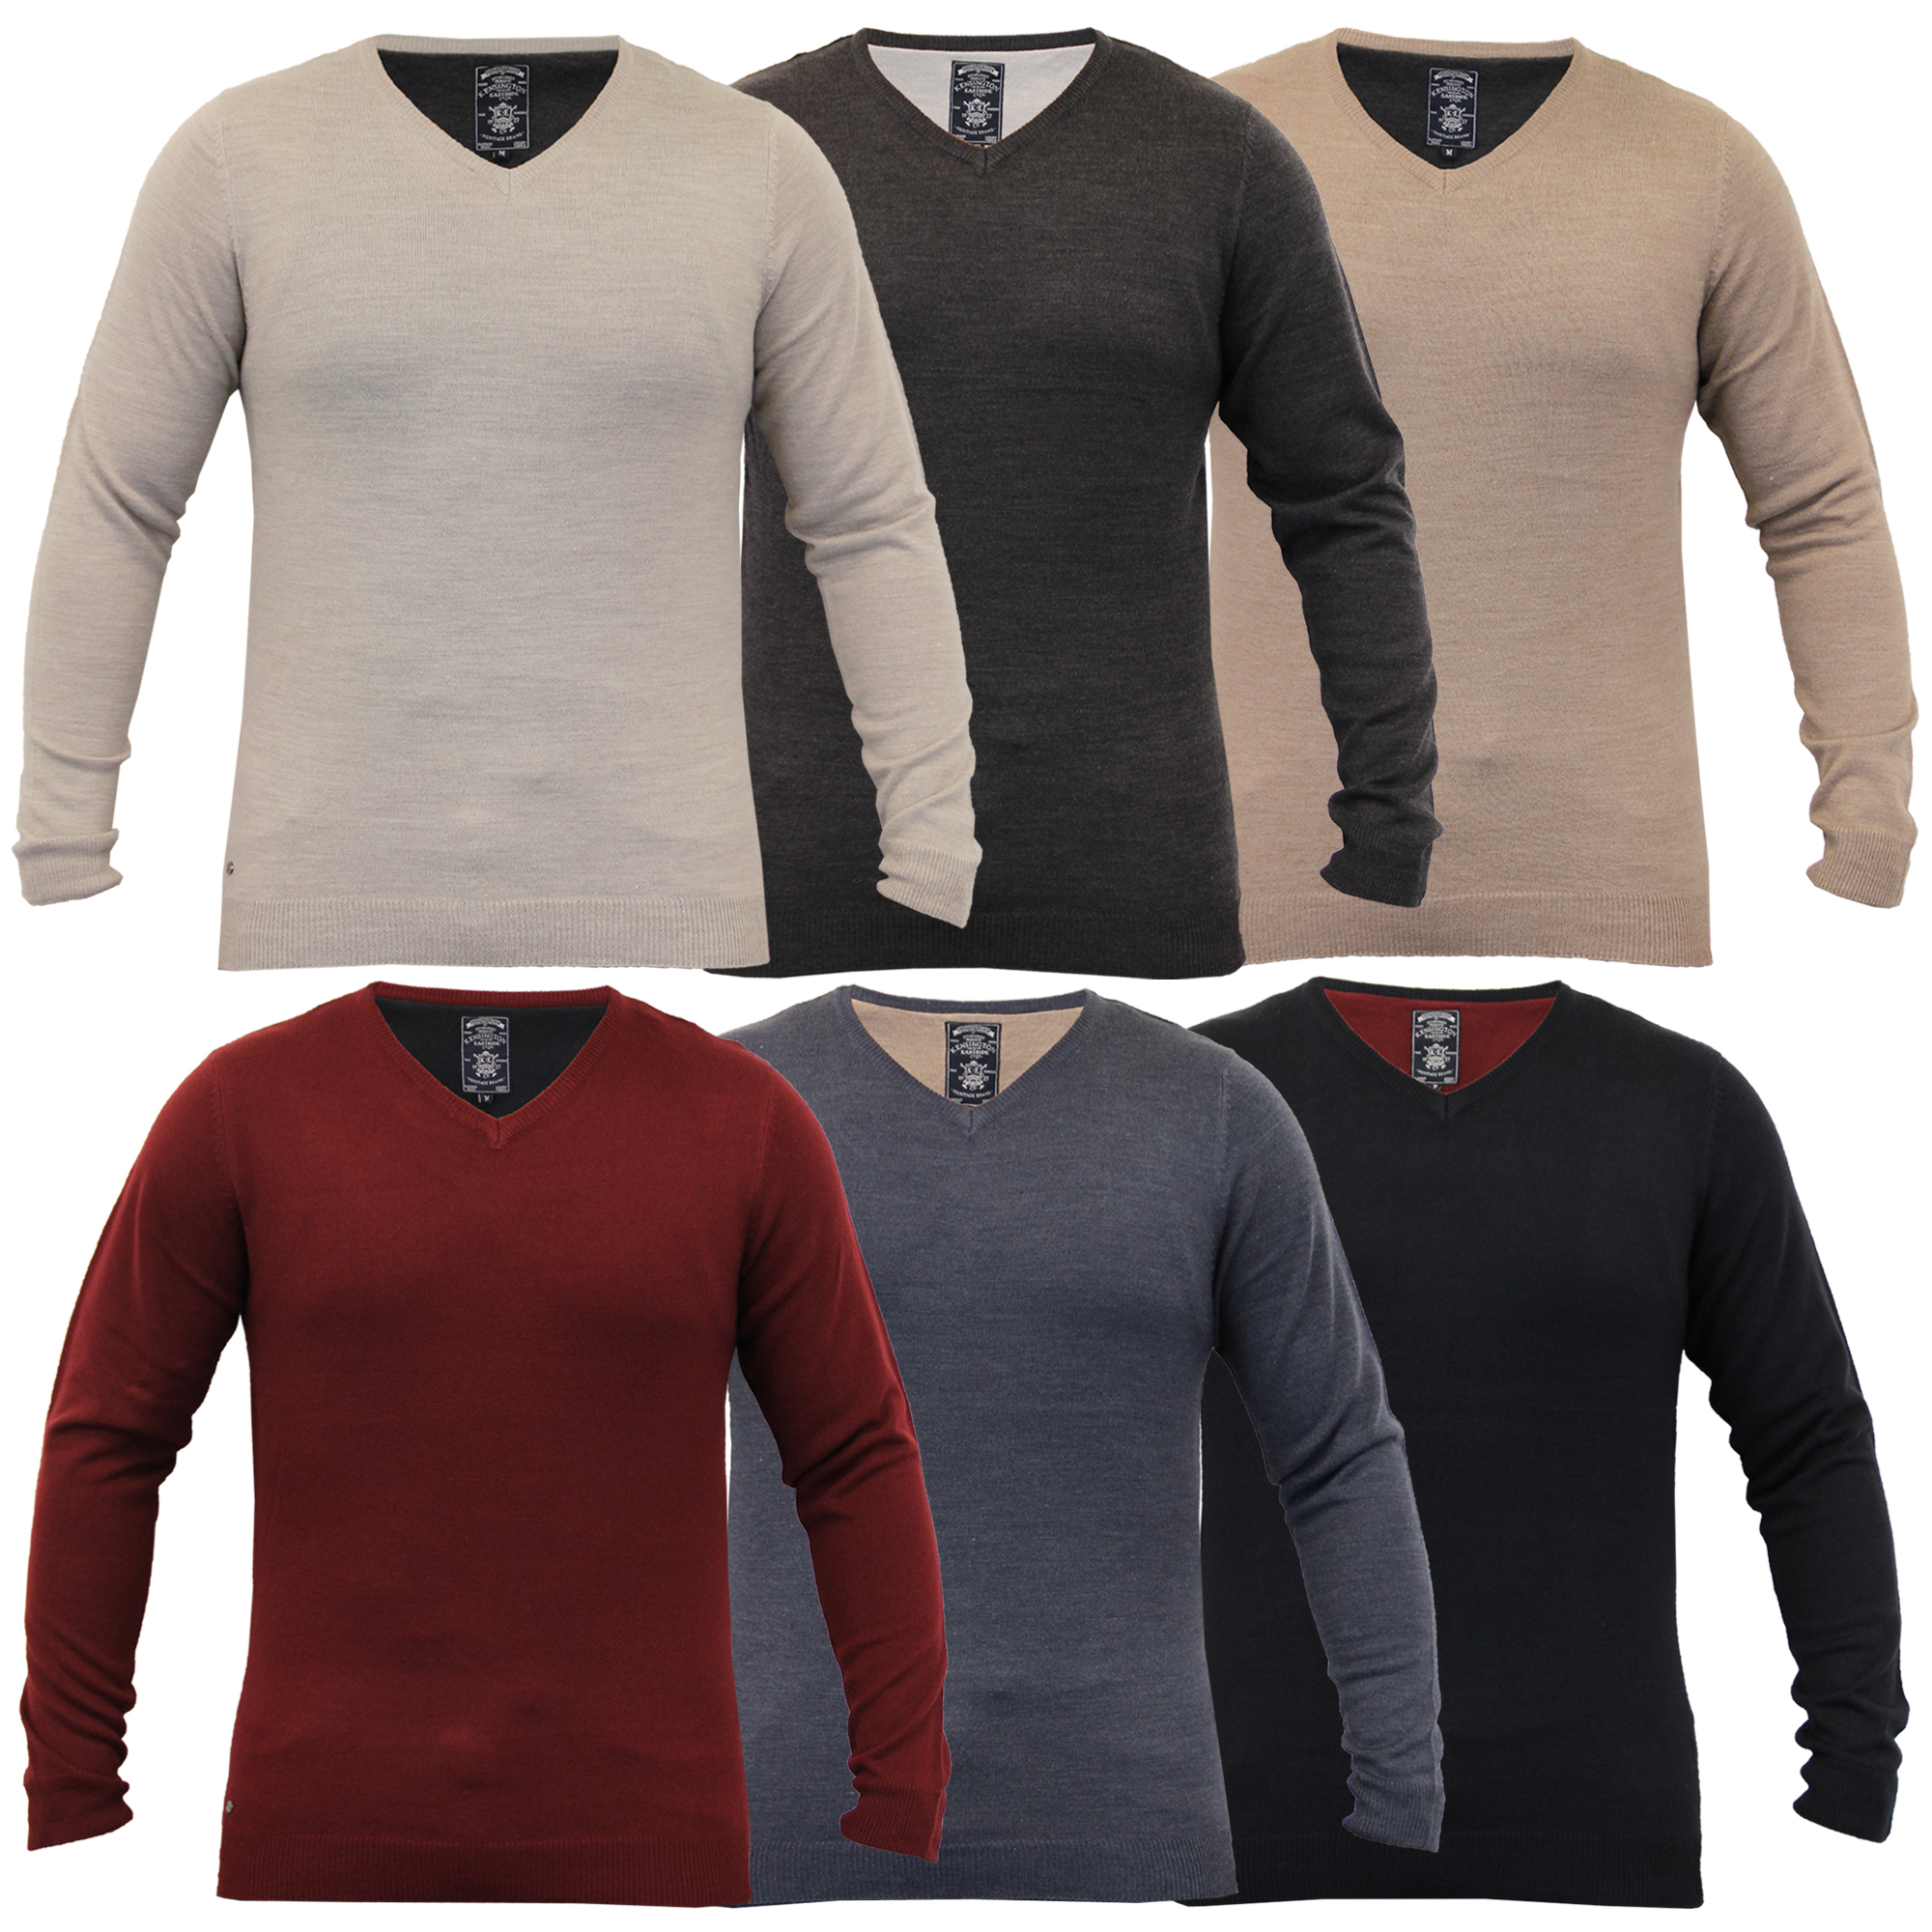 Mens-Knitted-Jumper-Pullover-Top-Winter-Sweater-By-Kensington-Eastside thumbnail 3